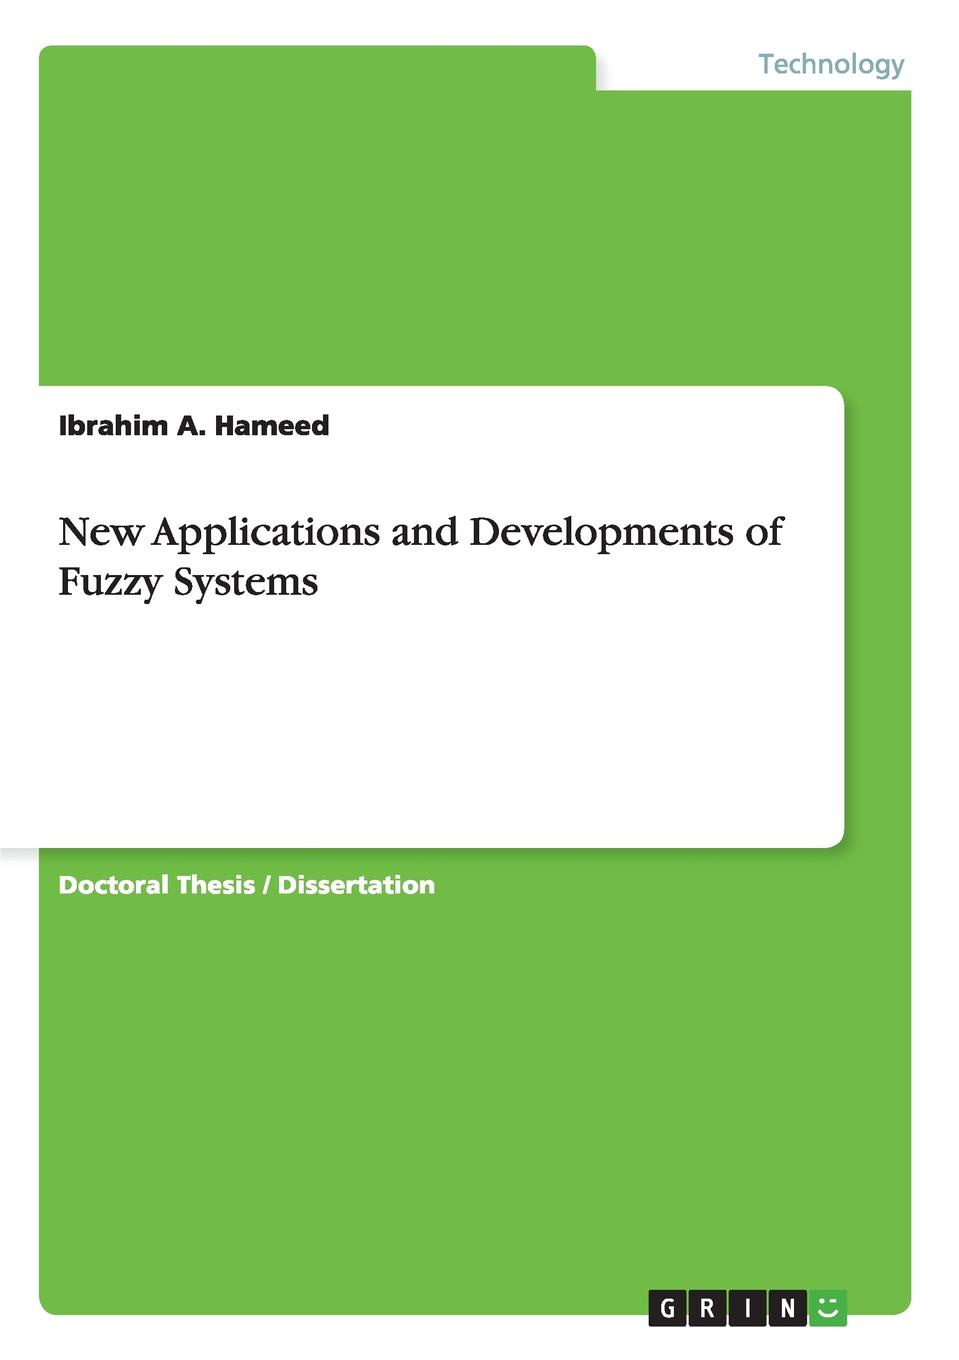 Ibrahim A. Hameed New Applications and Developments of Fuzzy Systems derong liu fundamentals of computational intelligence neural networks fuzzy systems and evolutionary computation